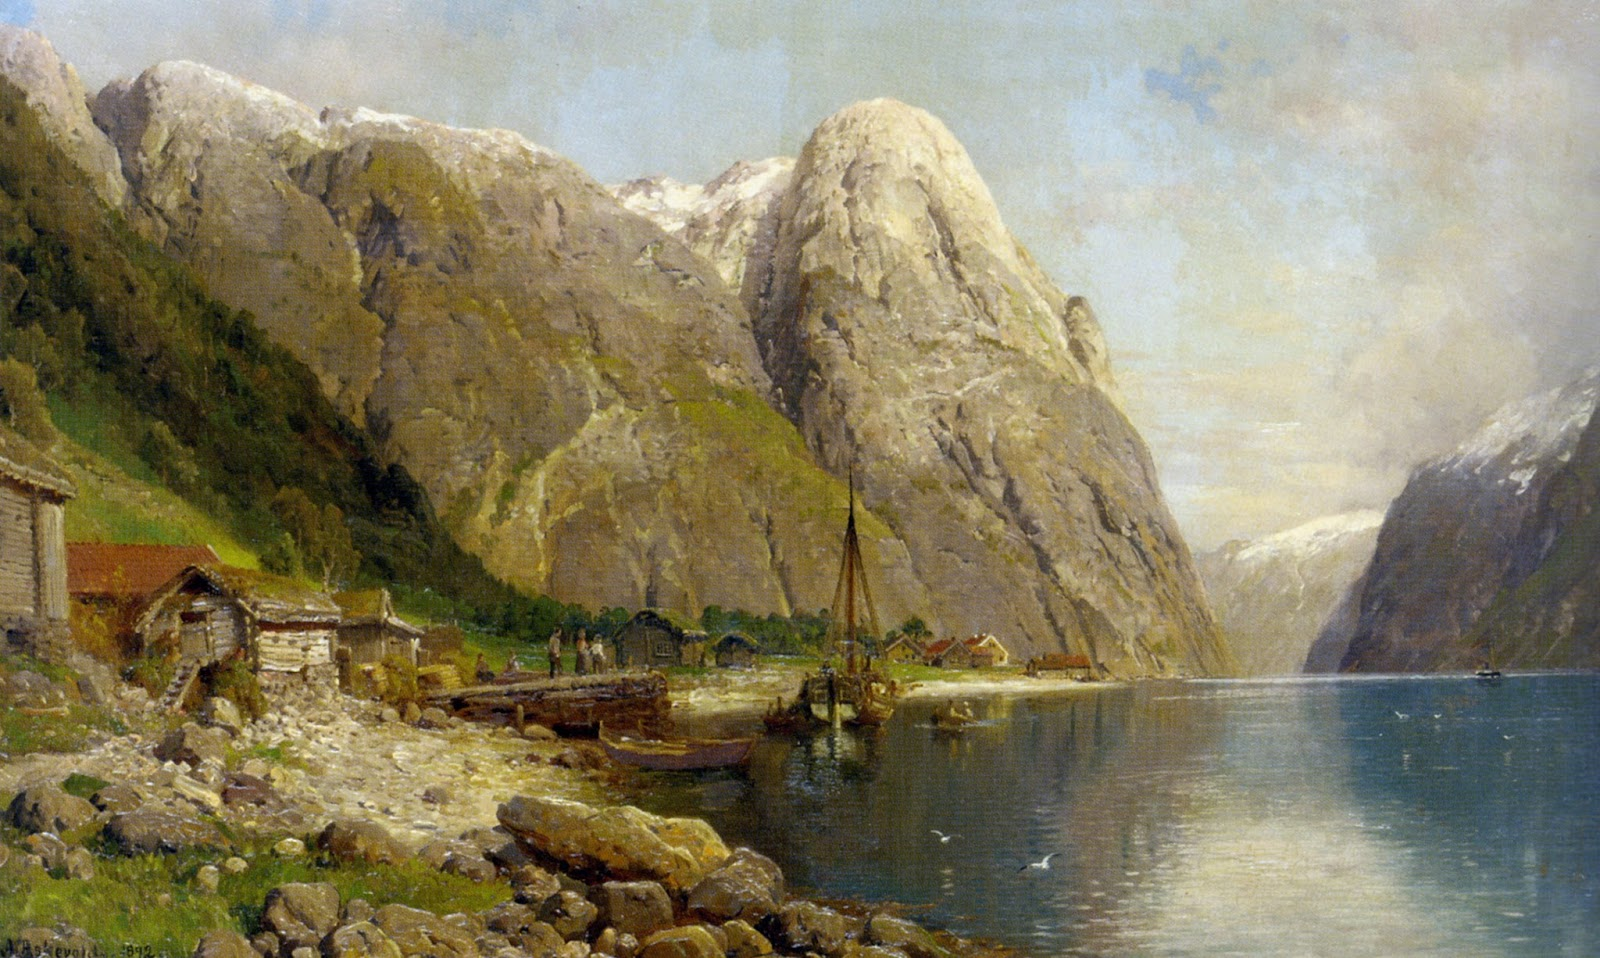 1 Anders Monsen Askevold     A Village on a Fjord.jpg